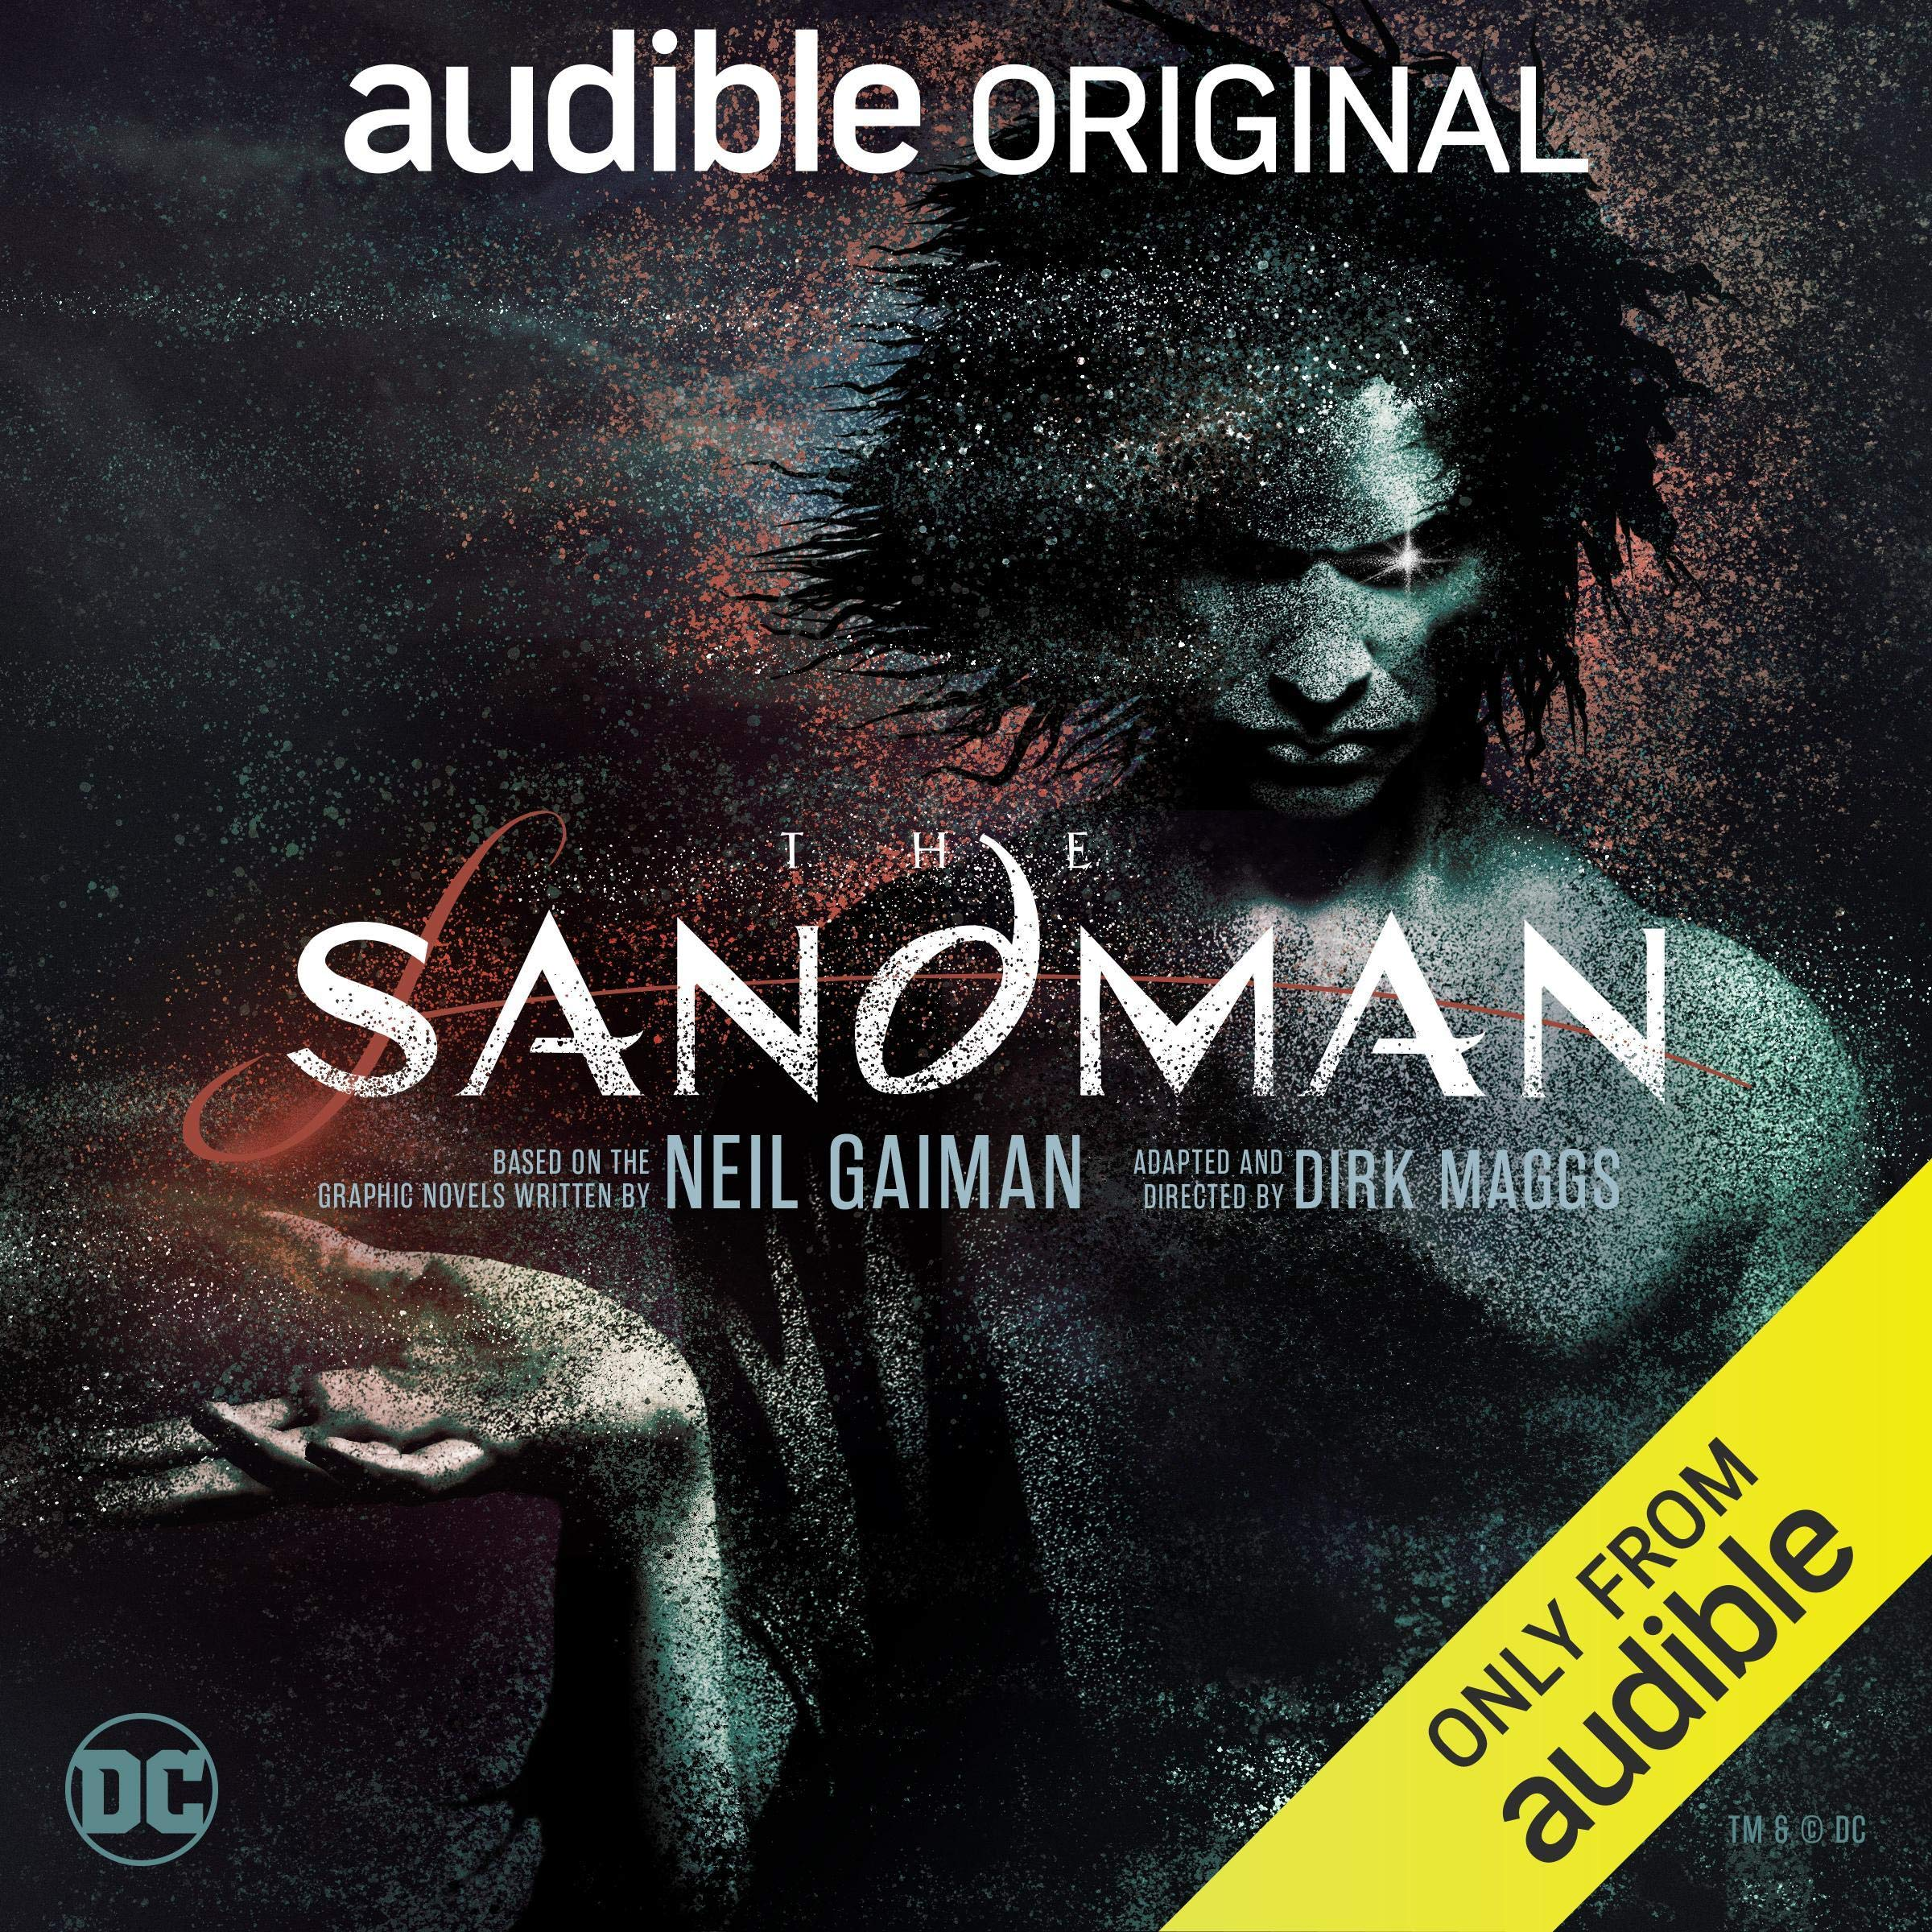 Cover image of The Sandman by Neil Gaiman & Dirk Maggs